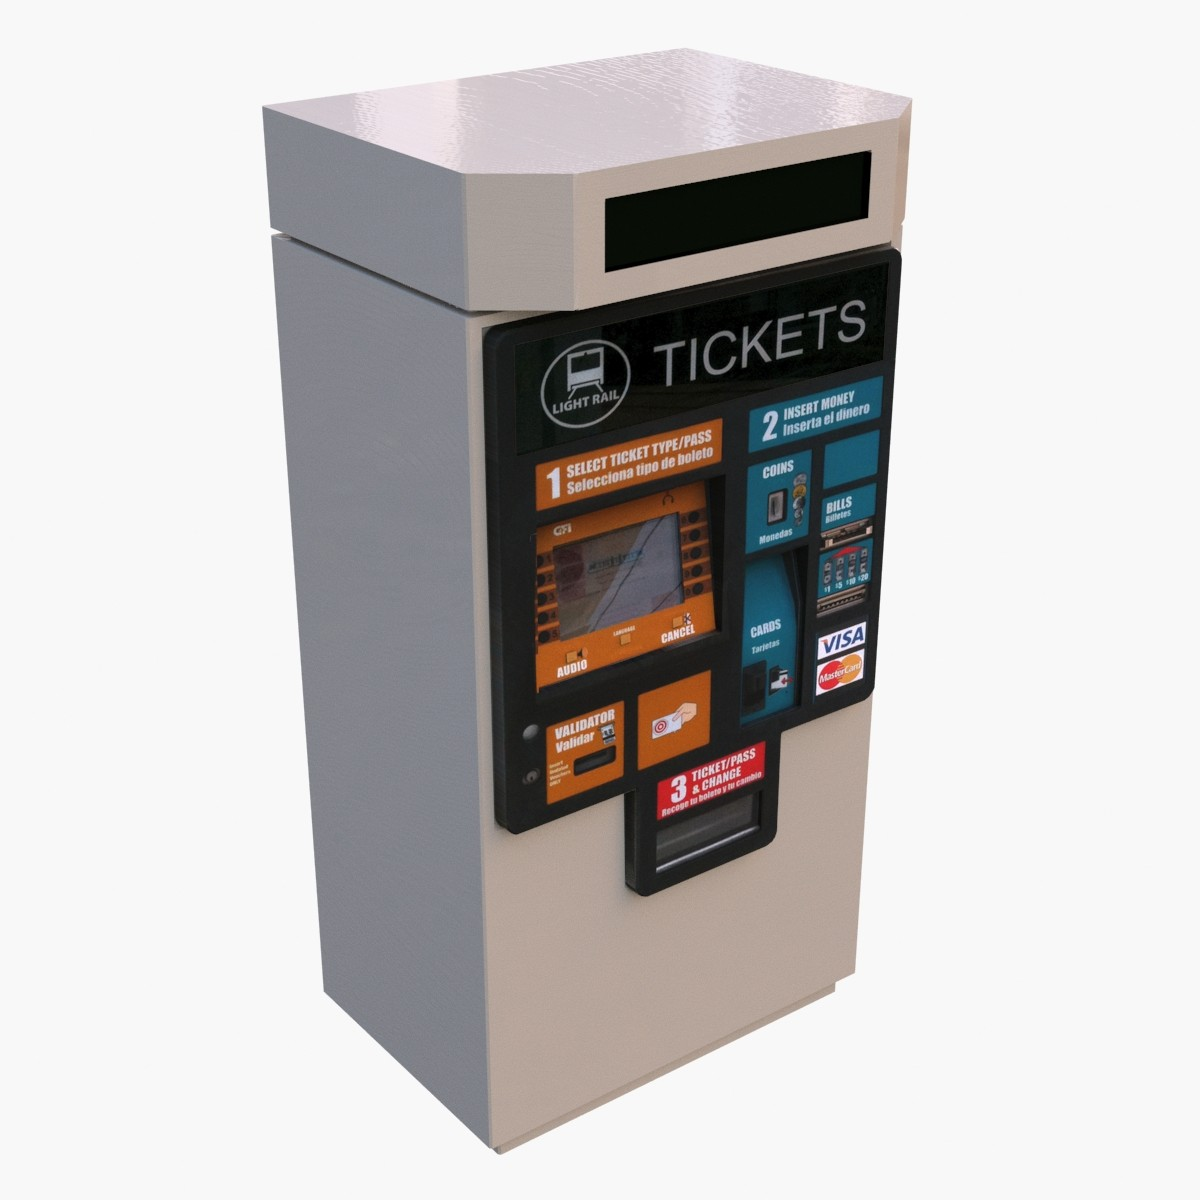 TicketVendingMachine.jpg3e5ff98b 4926 4328 8c04 8d1457939242Original